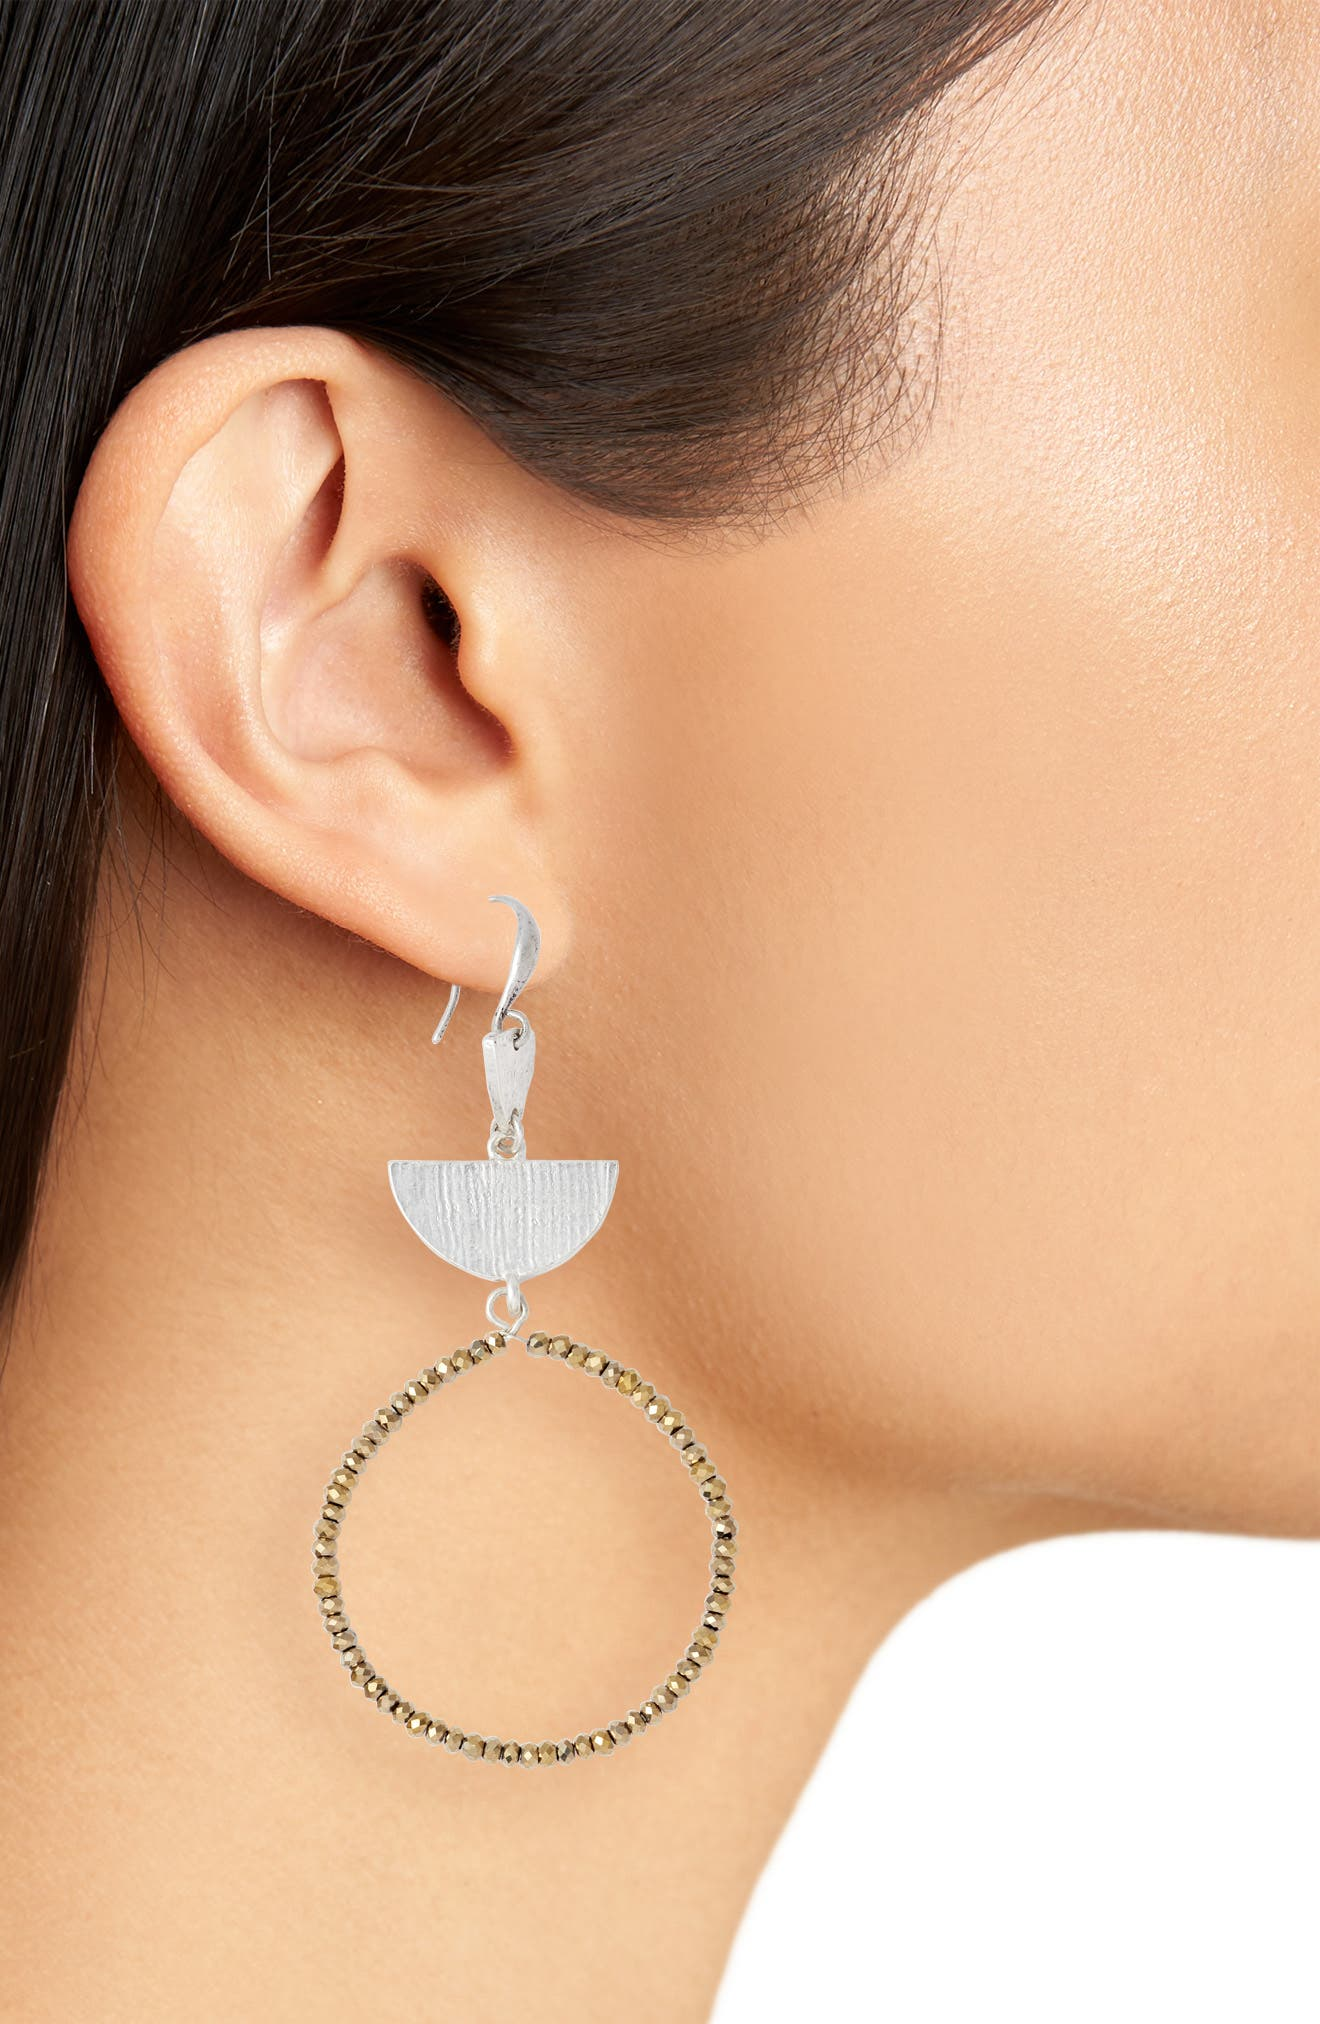 Etched Plate Beaded Earrings,                             Alternate thumbnail 2, color,                             Metallic- Rhodium